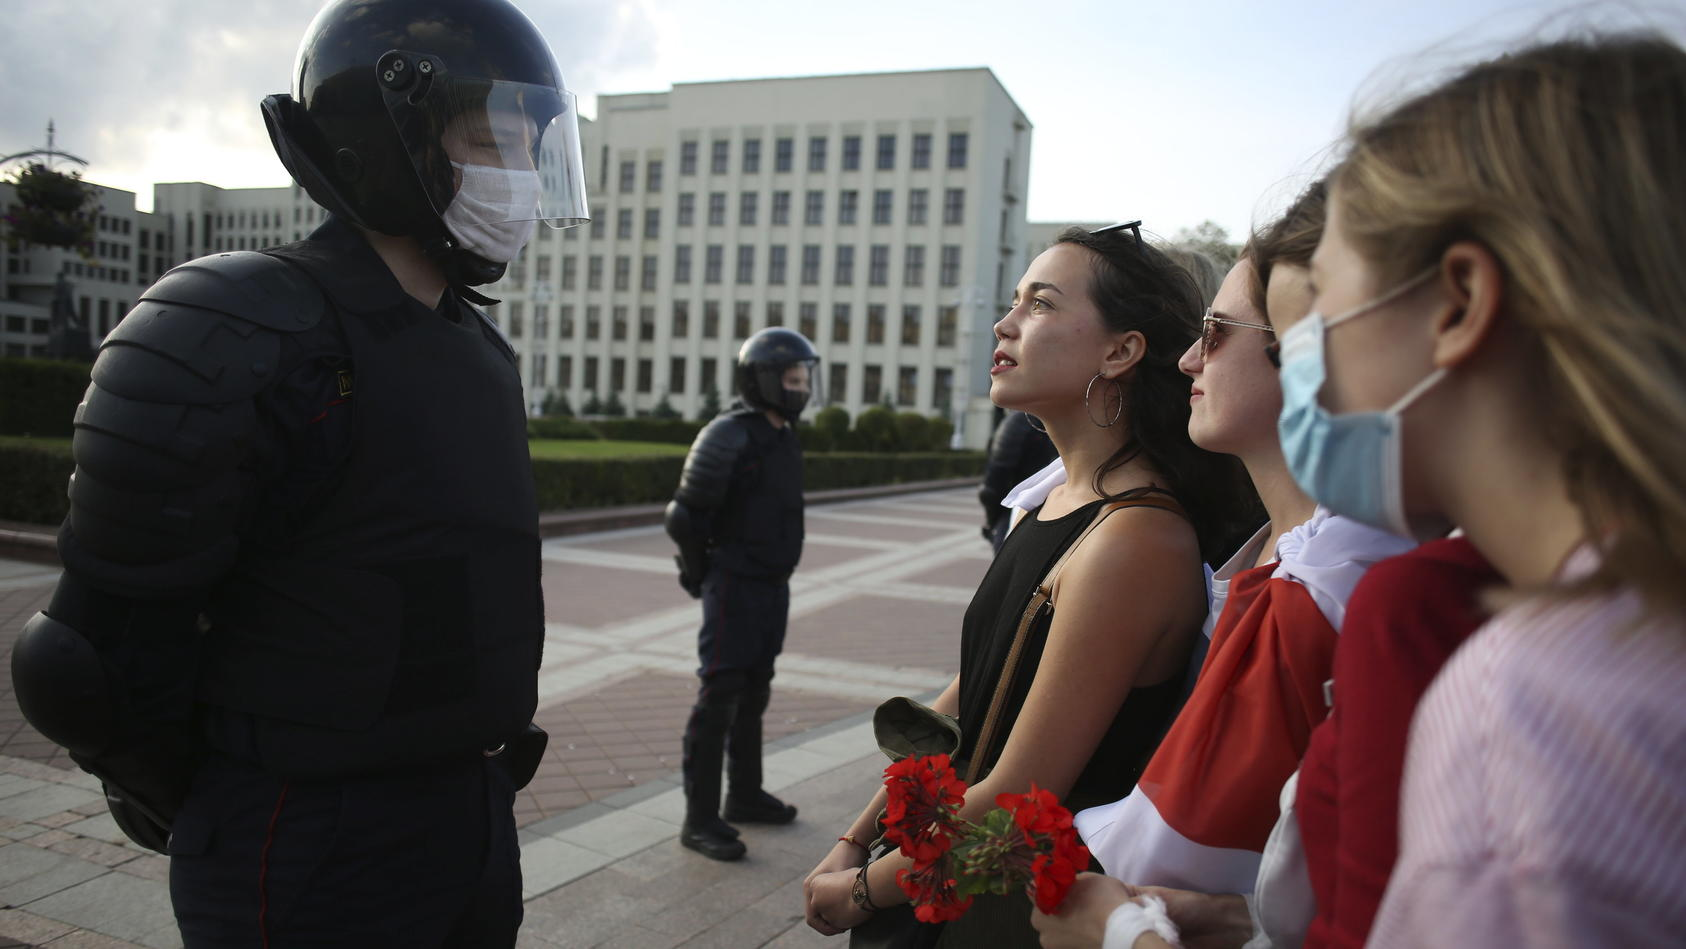 Frauen bei Protesten in Belarus (Archivbild vom 5. September)